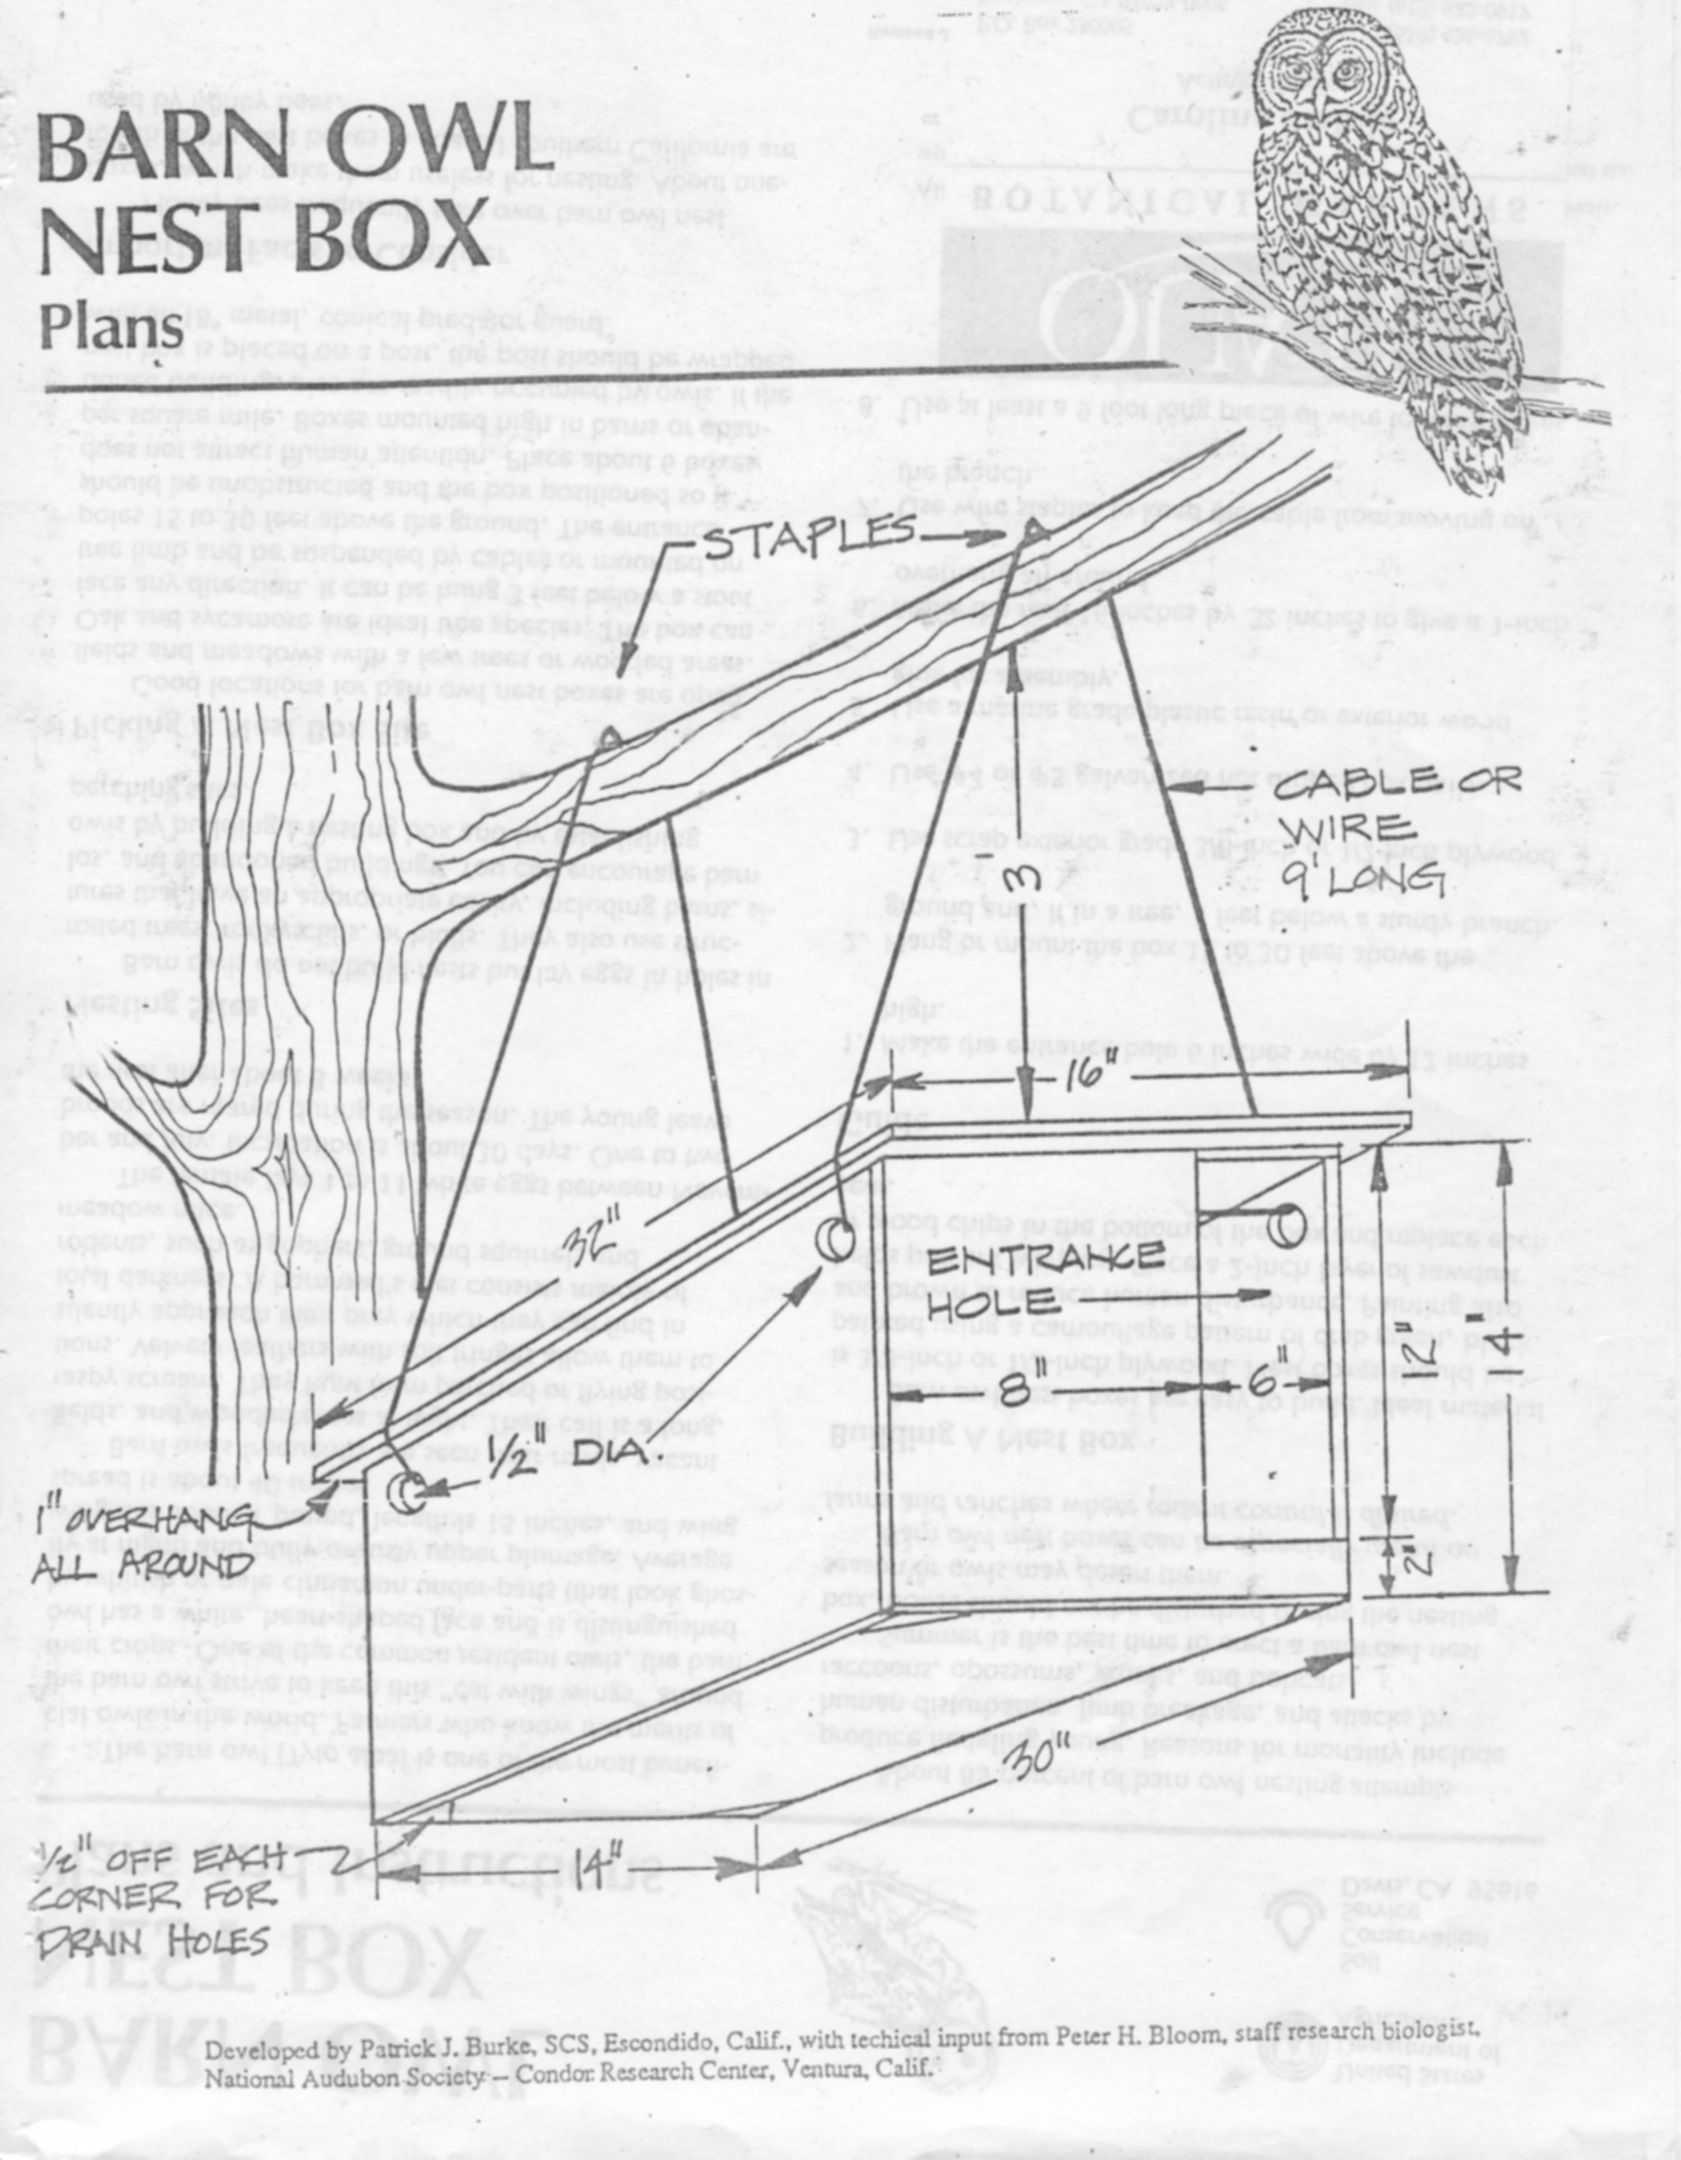 Build A Barn Owl Nesting Box To Encourage Barn Owls In Your Area Part 1 Outdoor School Owl Nesting School Curriculum